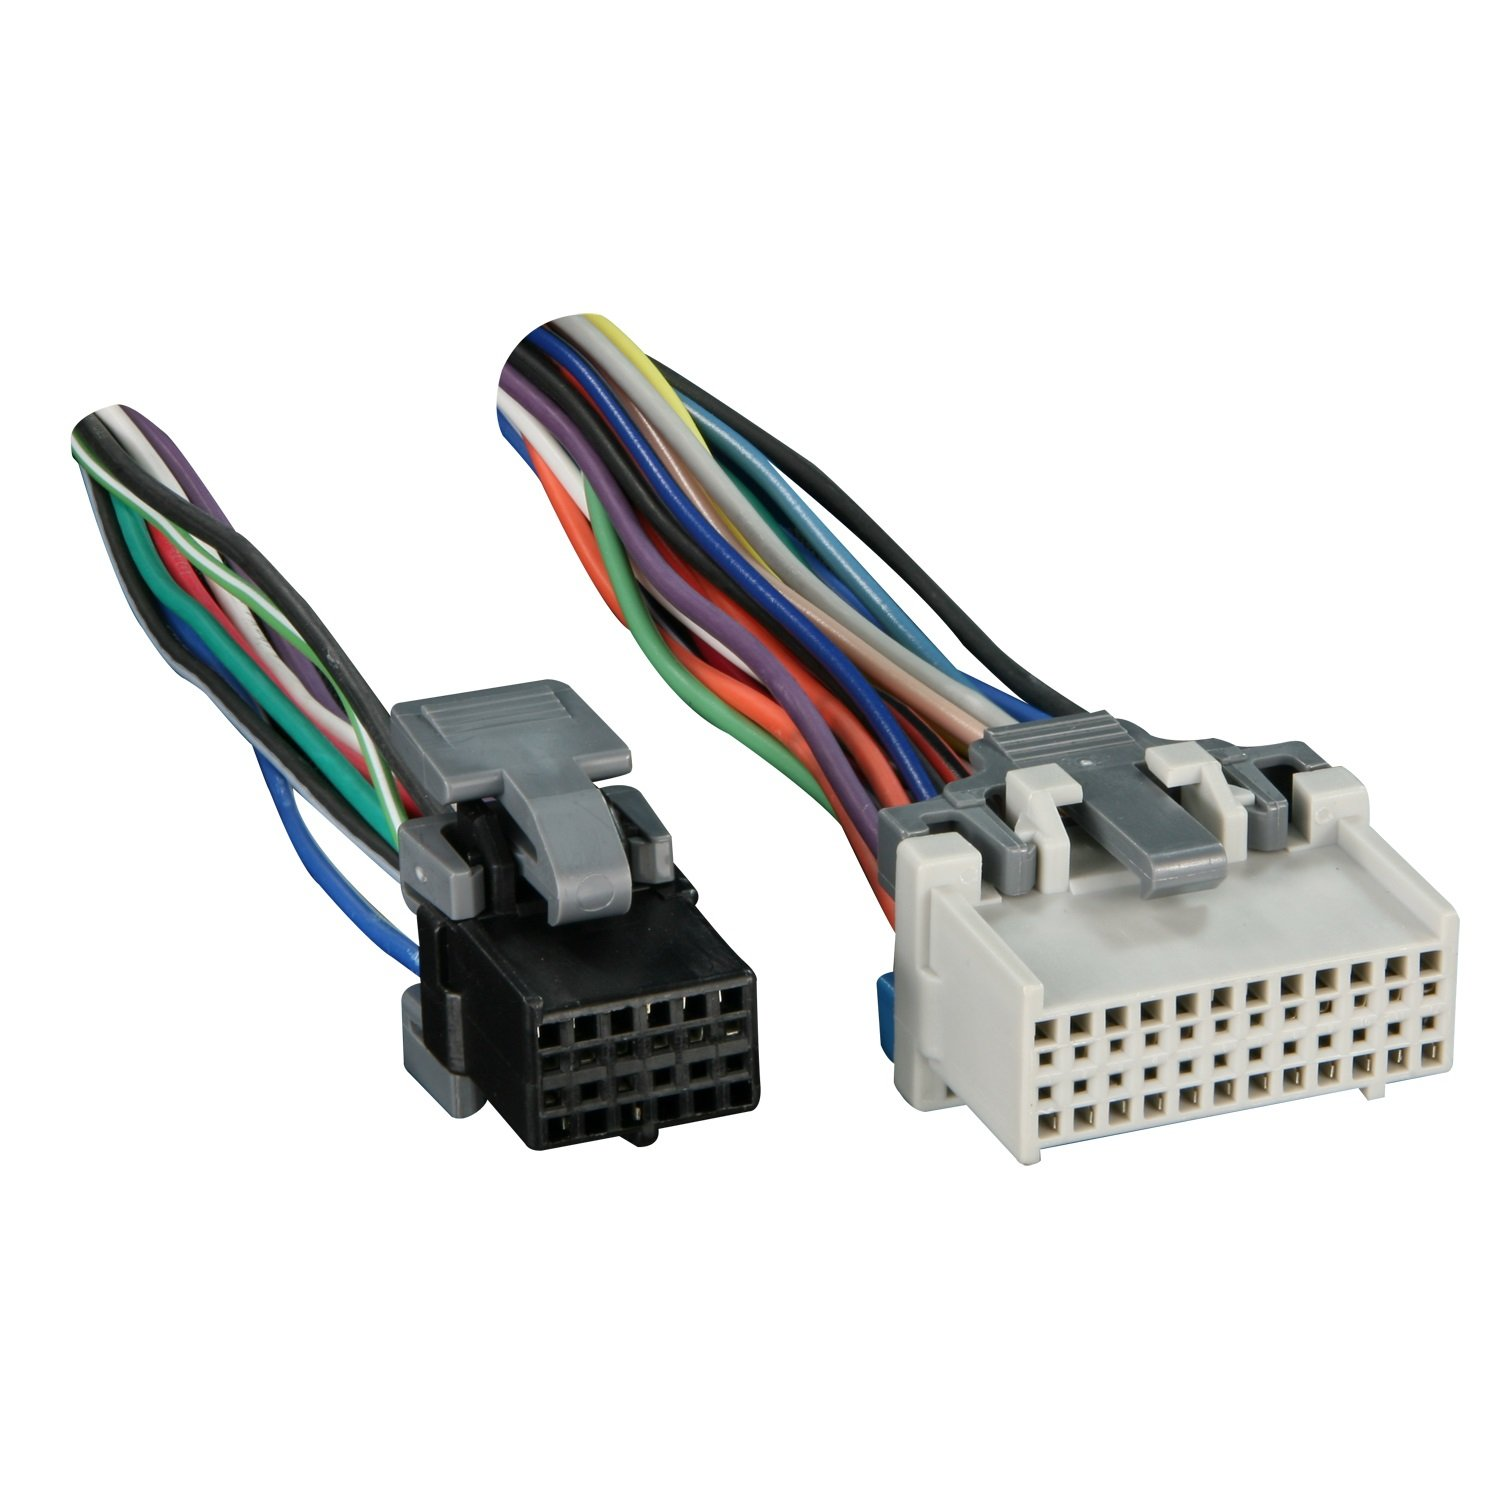 711log4bdML._SL1500_ amazon com metra turbowires 71 2003 1 wiring harness car electronics GM Wiring Color Codes at metegol.co